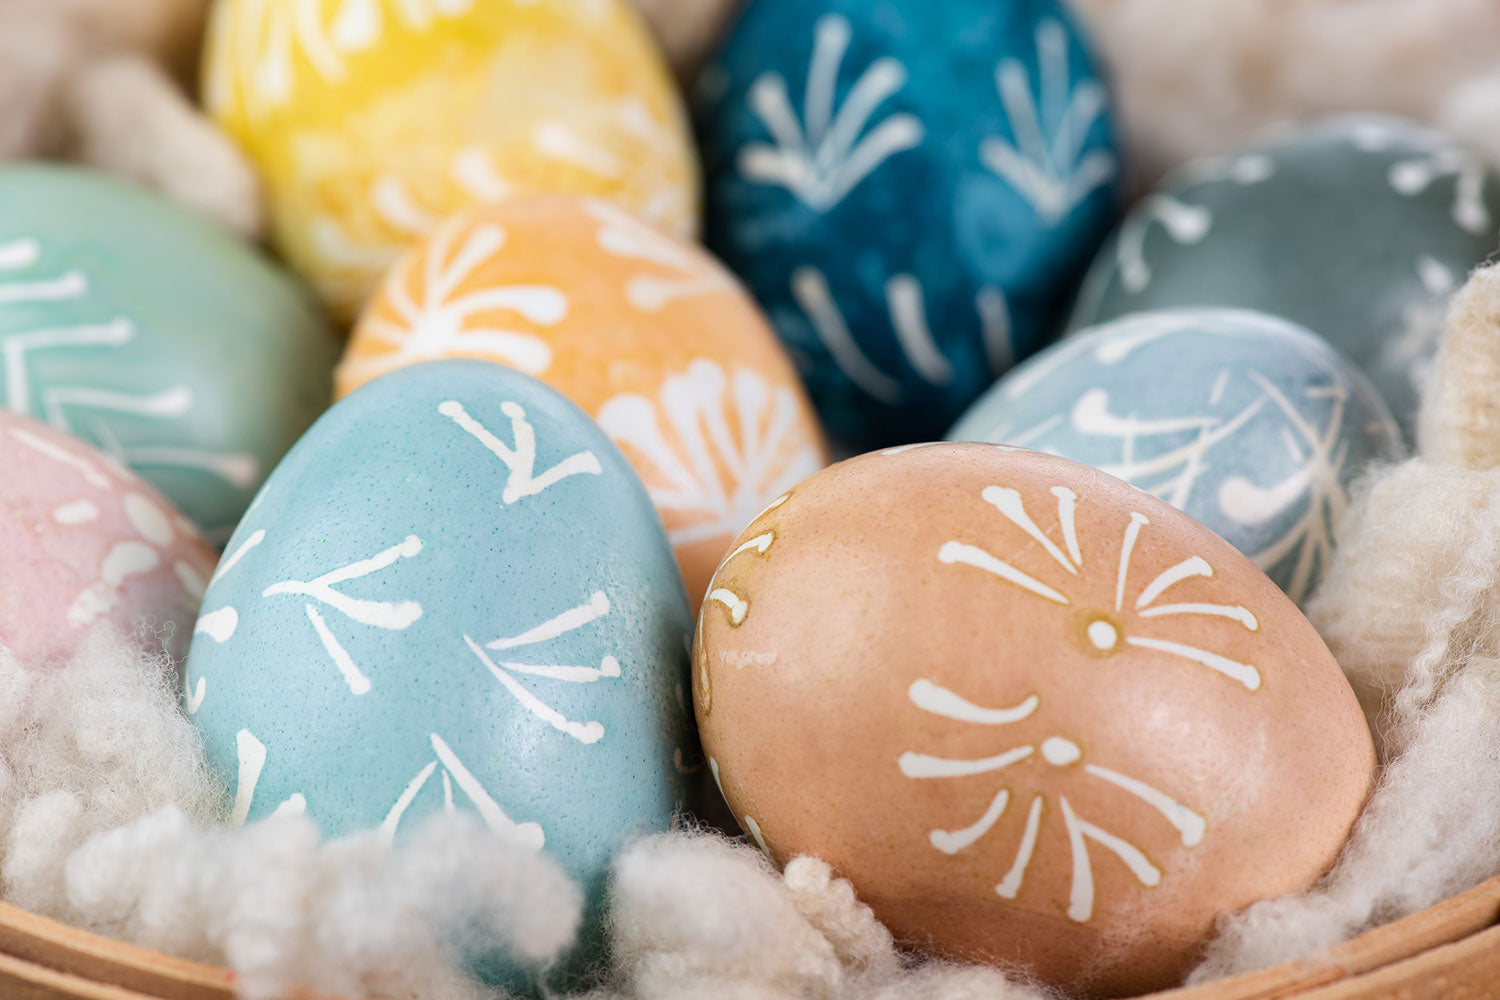 Traditional Lithuanian Easter eggs dyed with various natural dyes